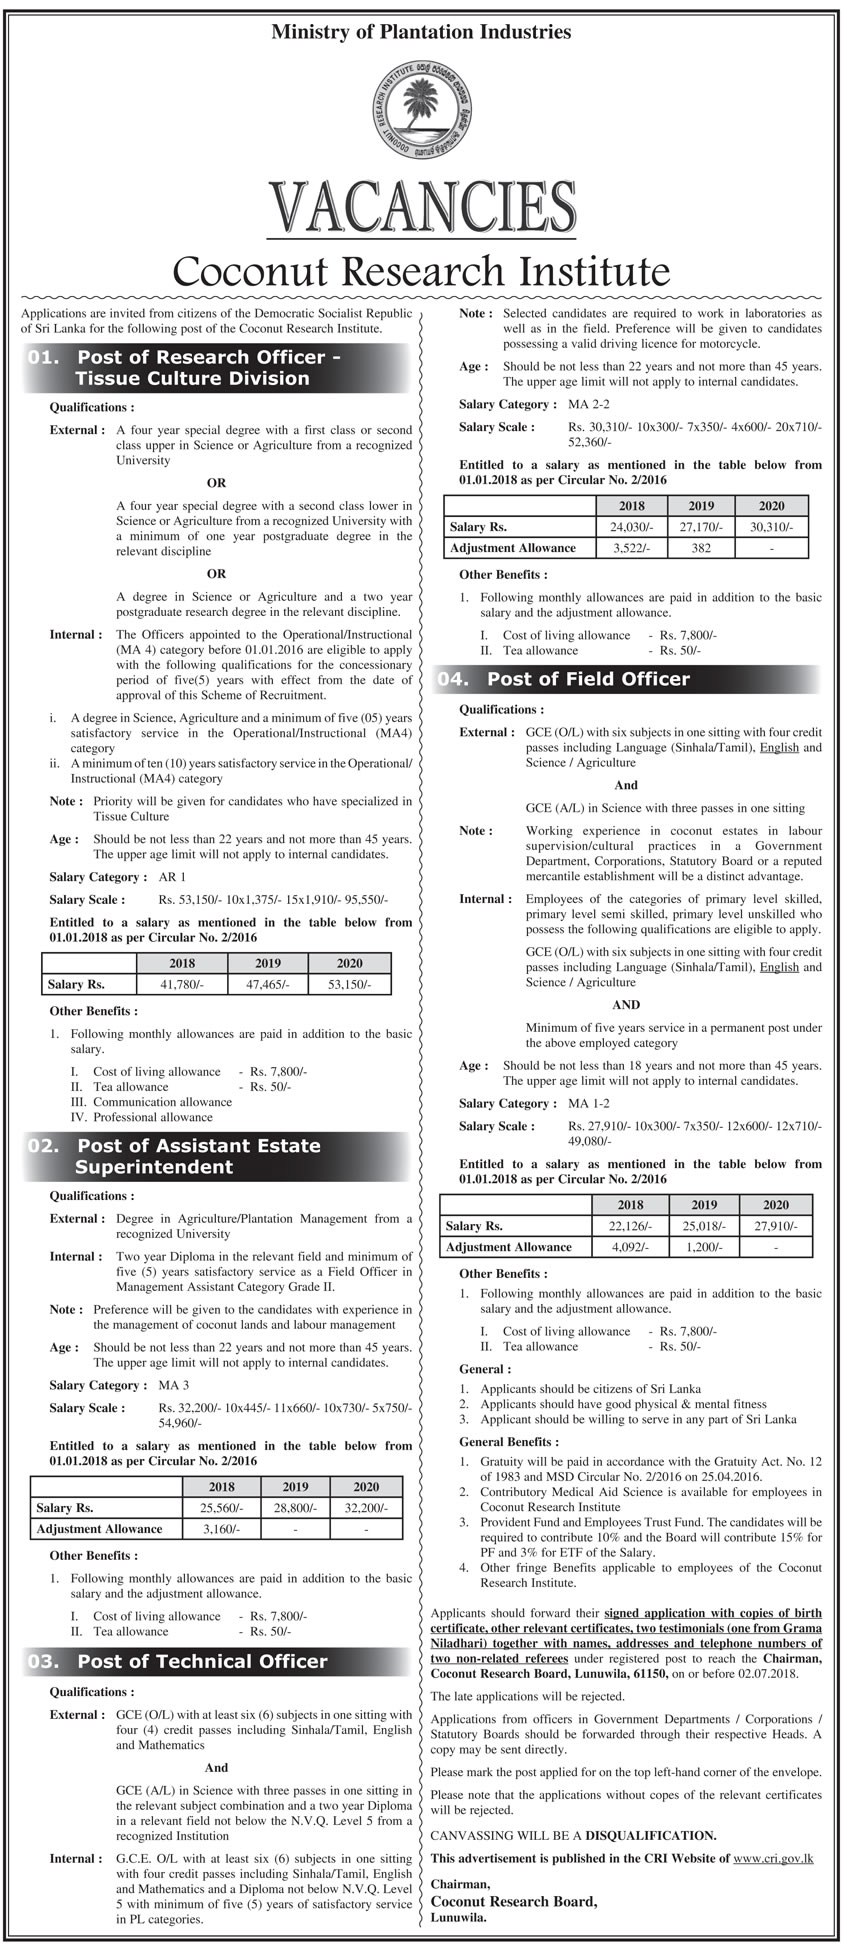 Research Officer, Assistant Estate Superintendent, Technical Officer, Field Officer Job Vacancy